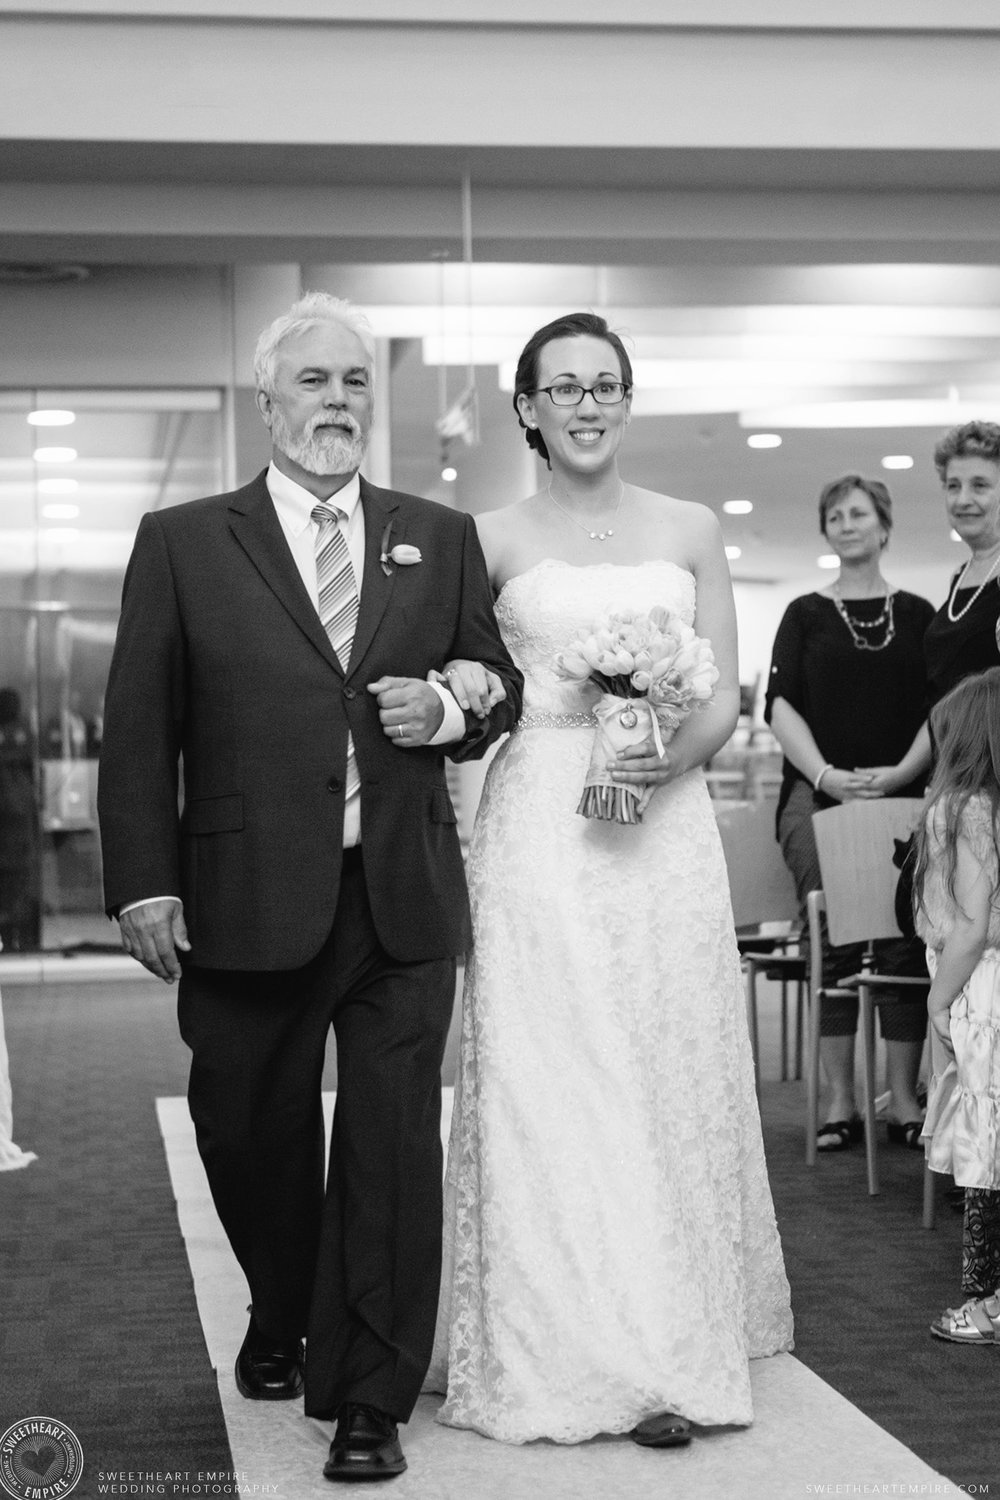 The bride walking down the aisle with her father; Toronto Reference Library Wedding